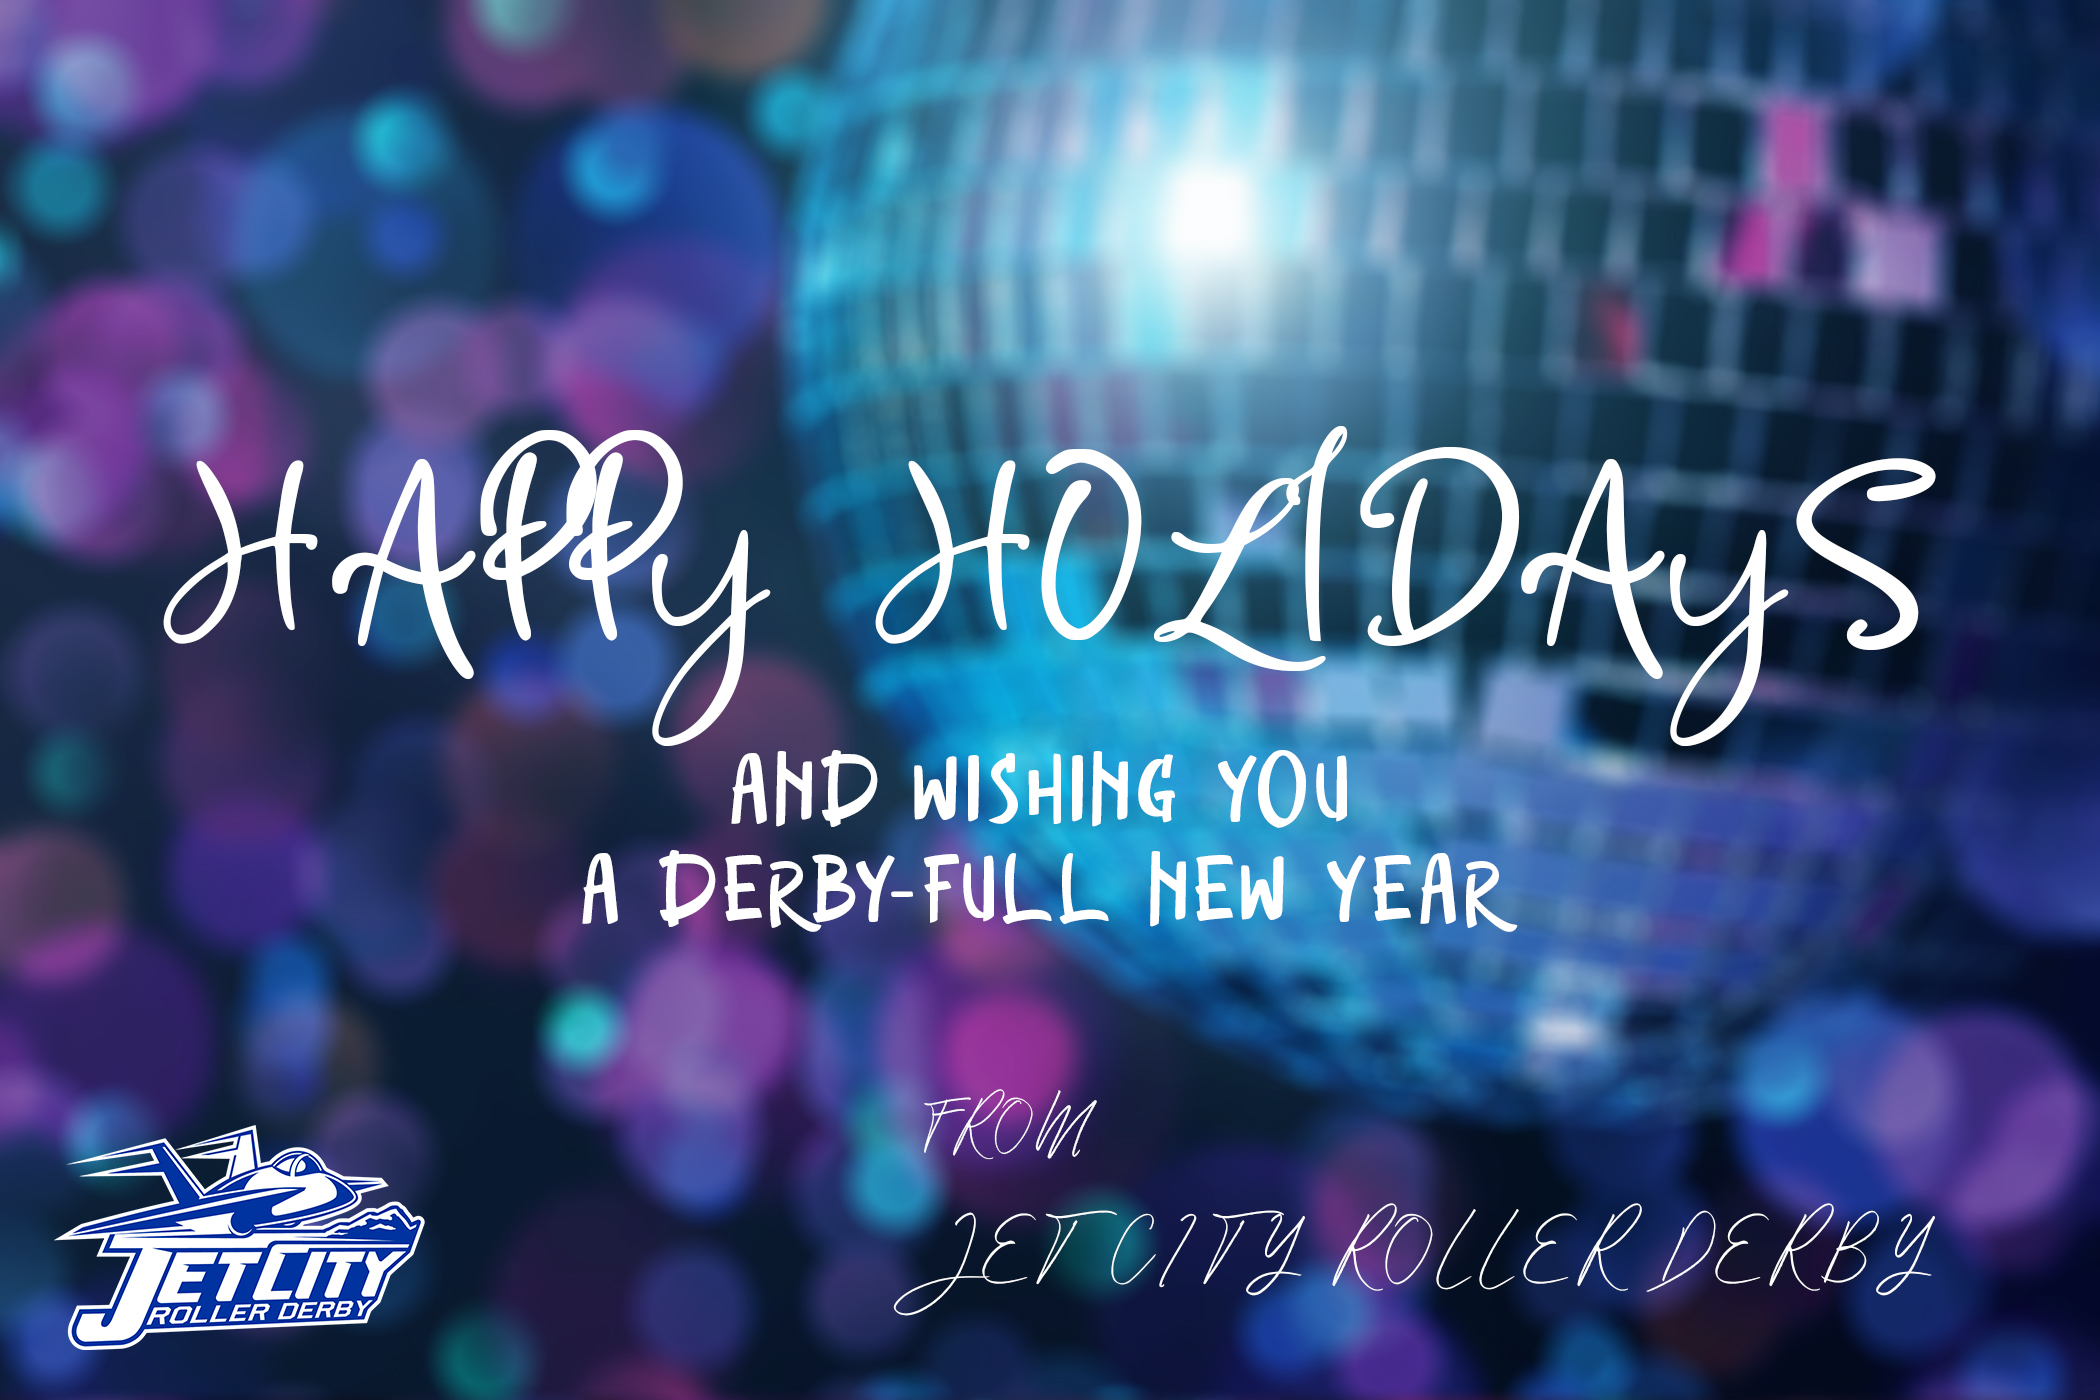 Happy Holidays from JCRD